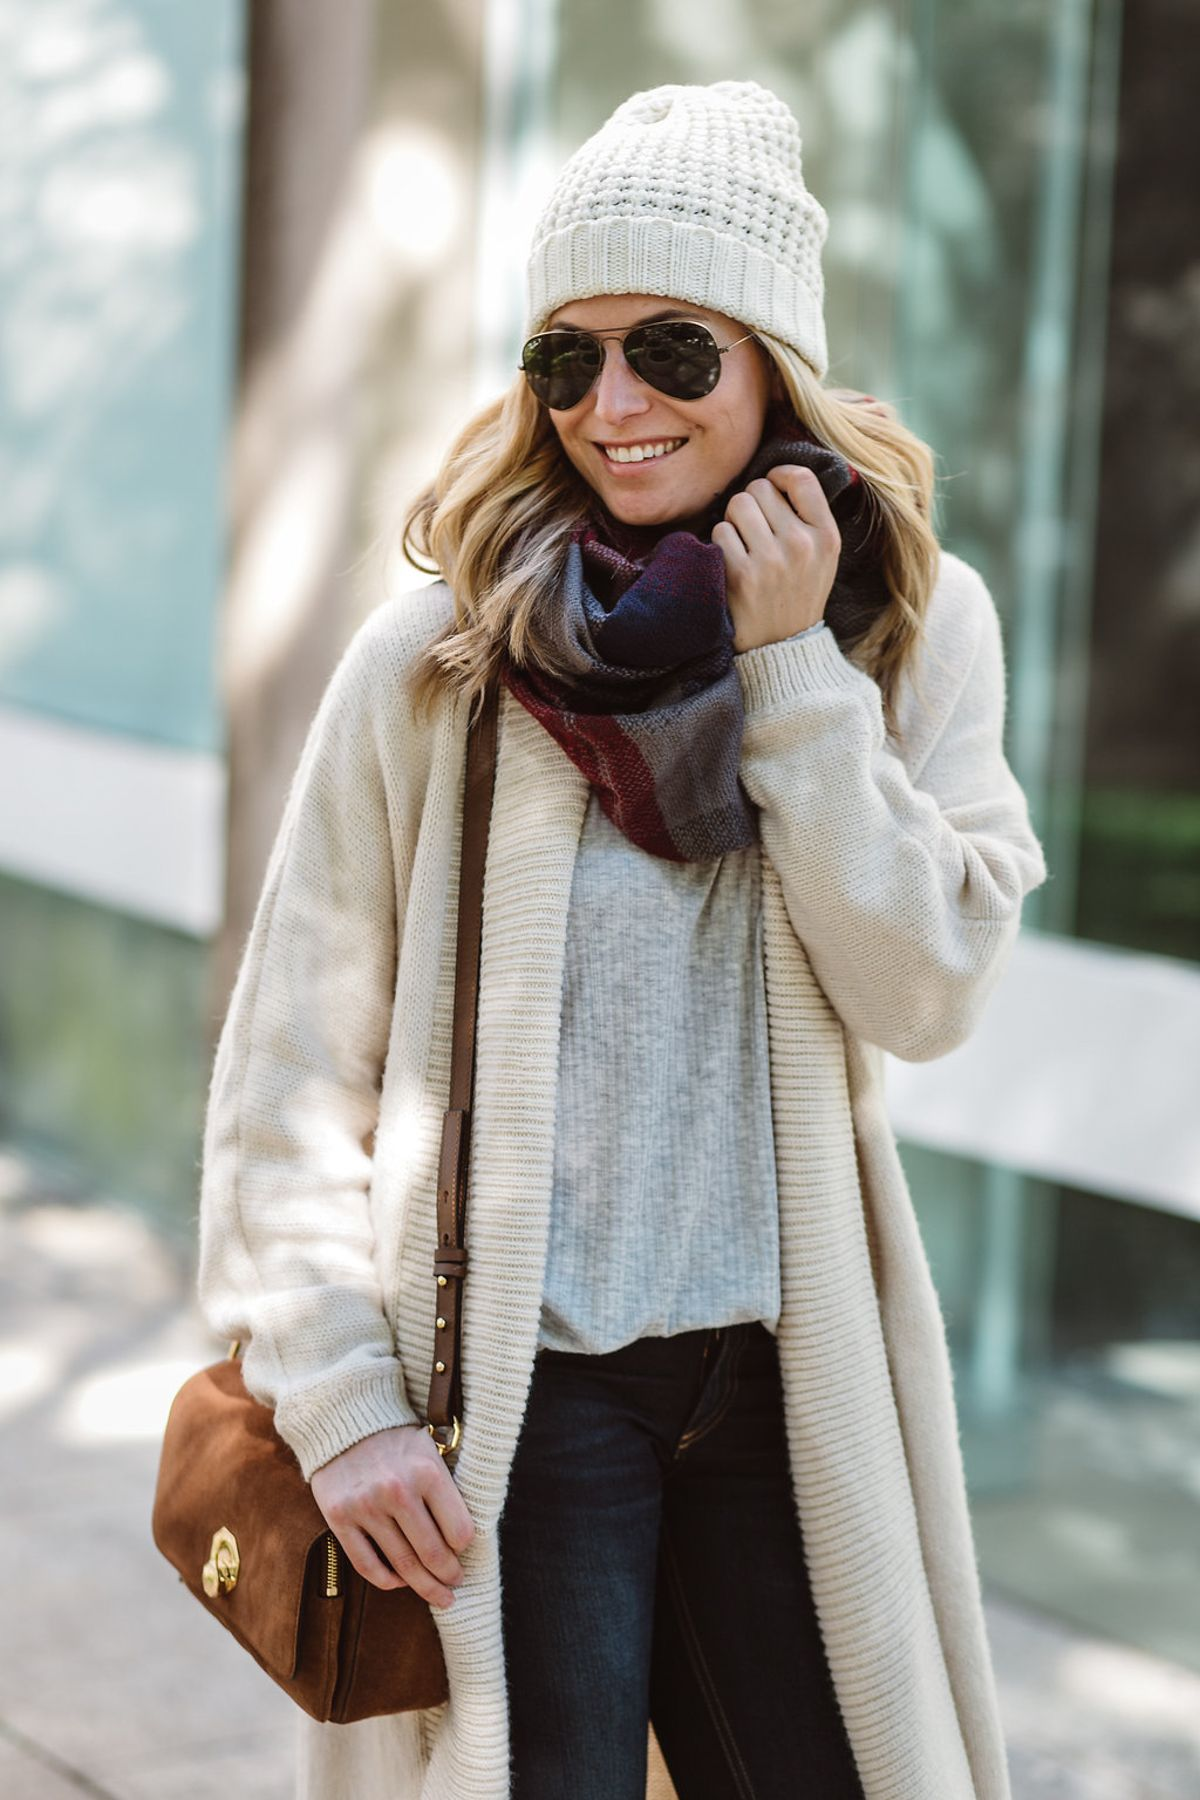 Photo of CHIC AT HVER AGE // BOOTS + SCARVES | En liten blond | Dallas Fashion Blogger